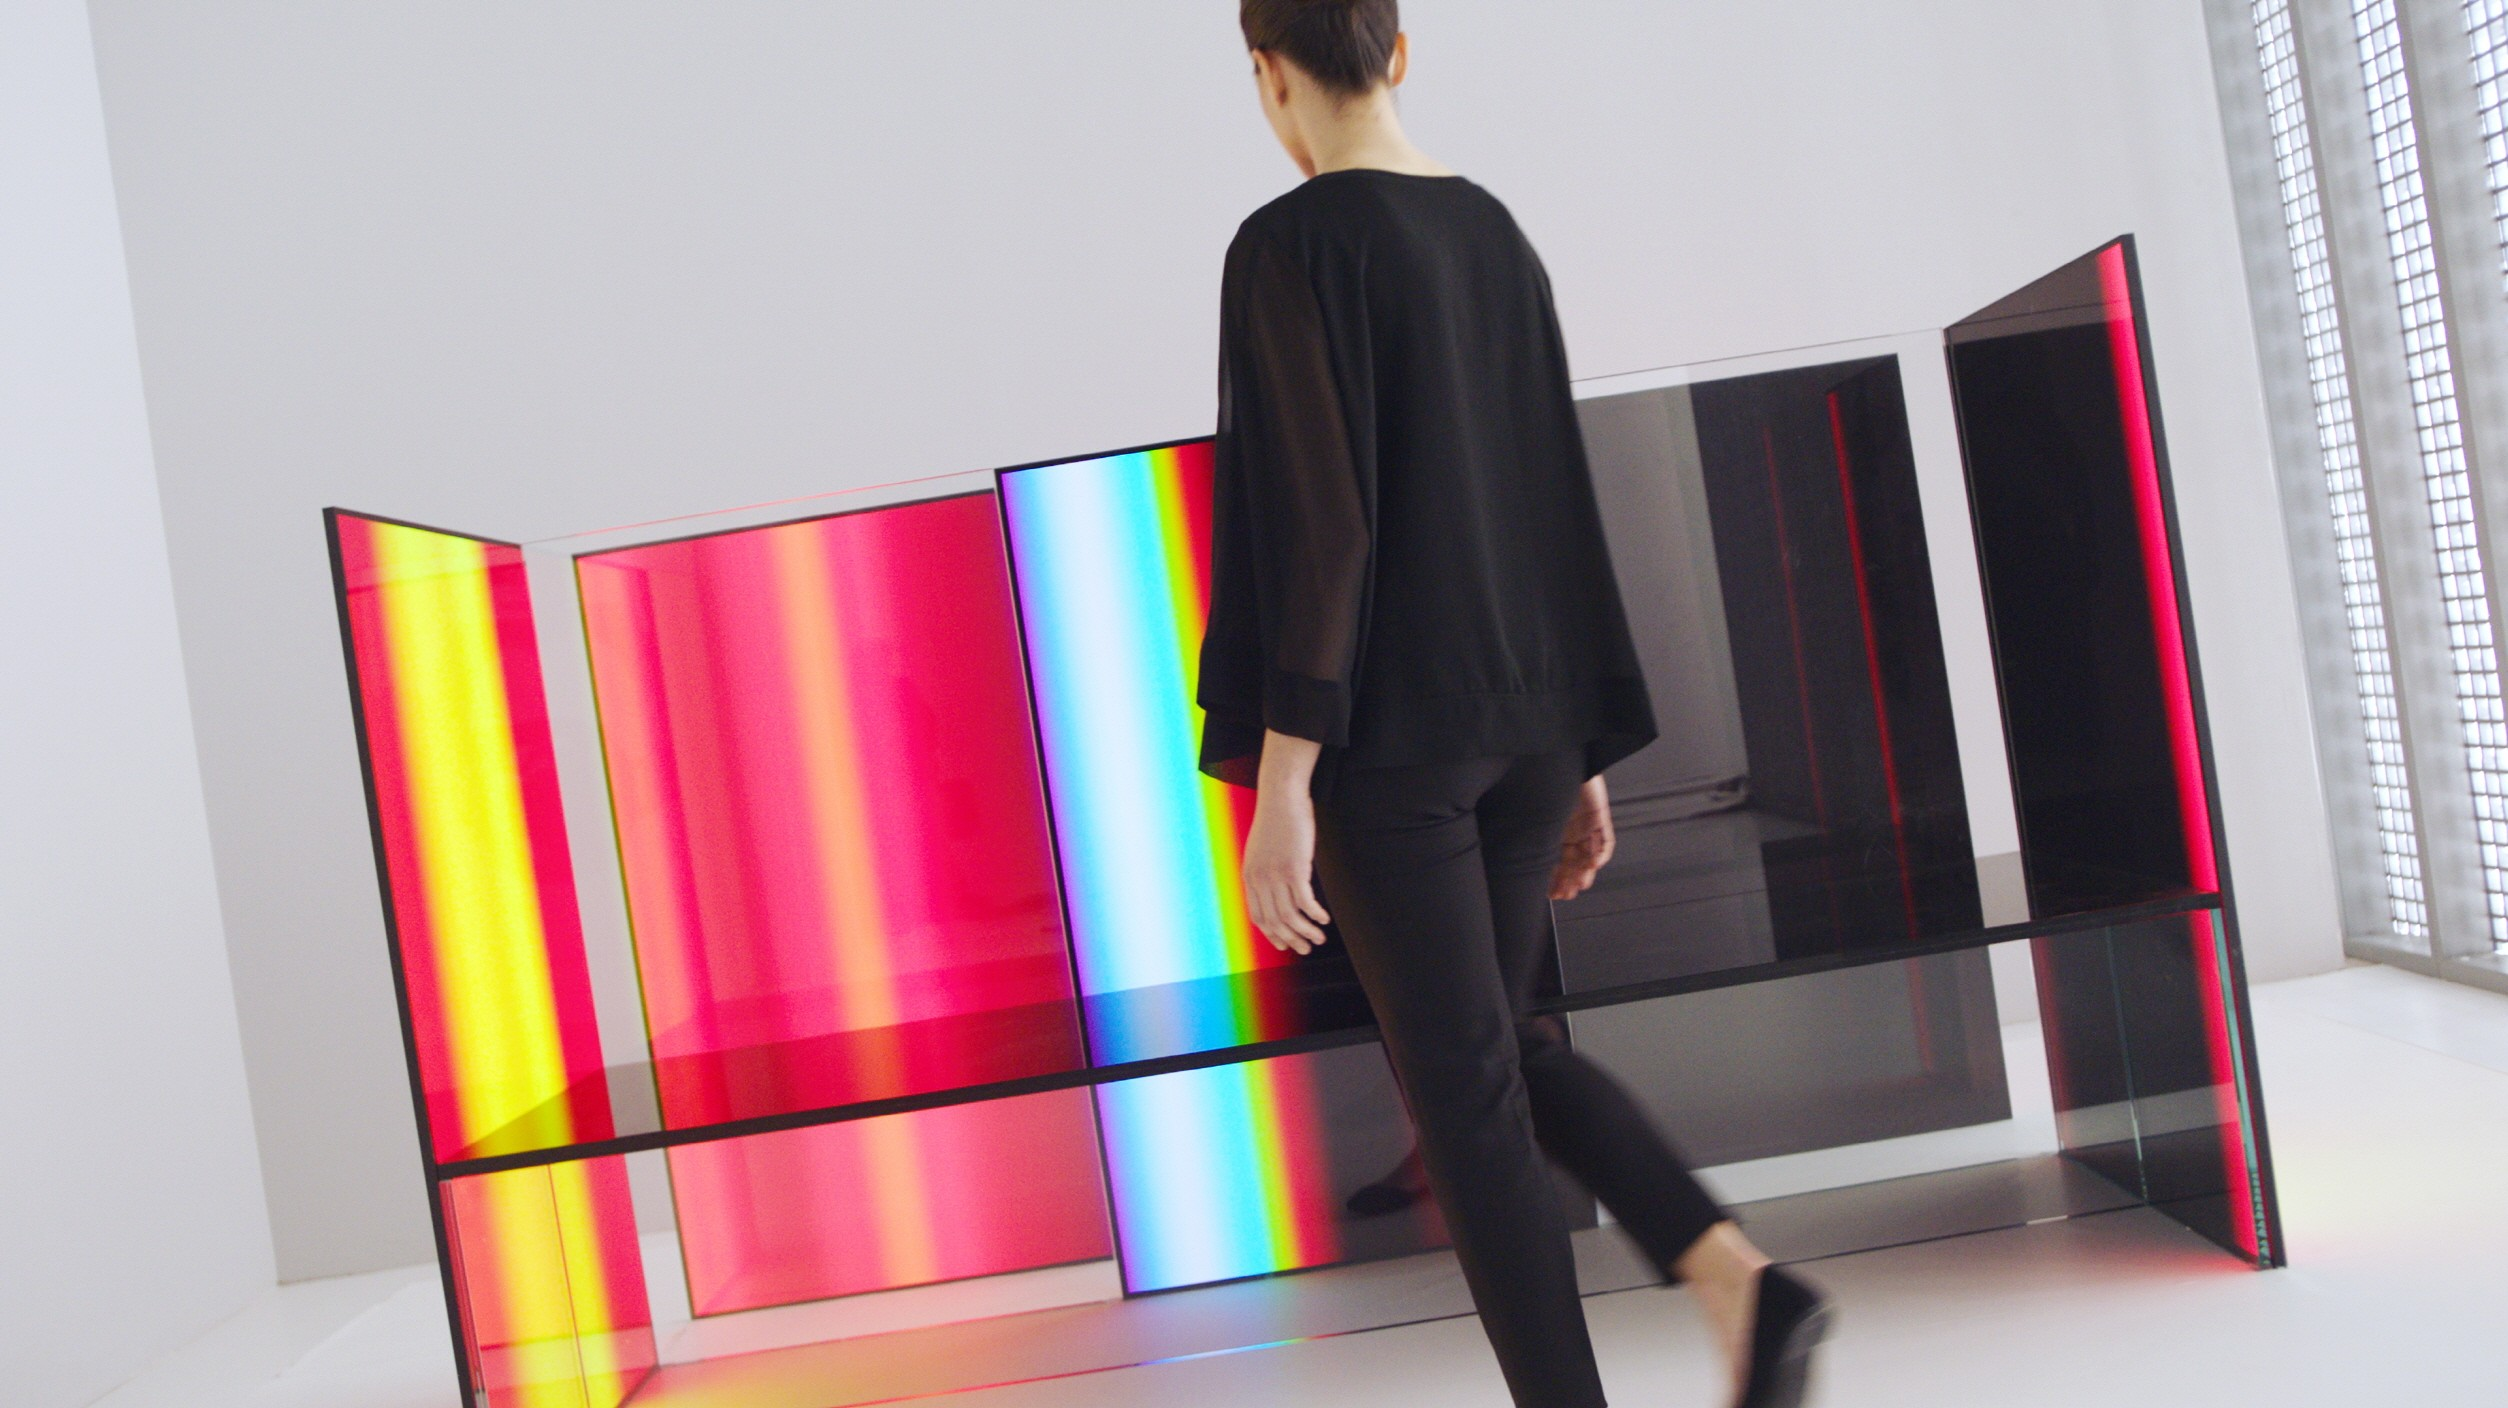 A woman beholds Tokujin Yoshioka's OLED panel installation artwork.